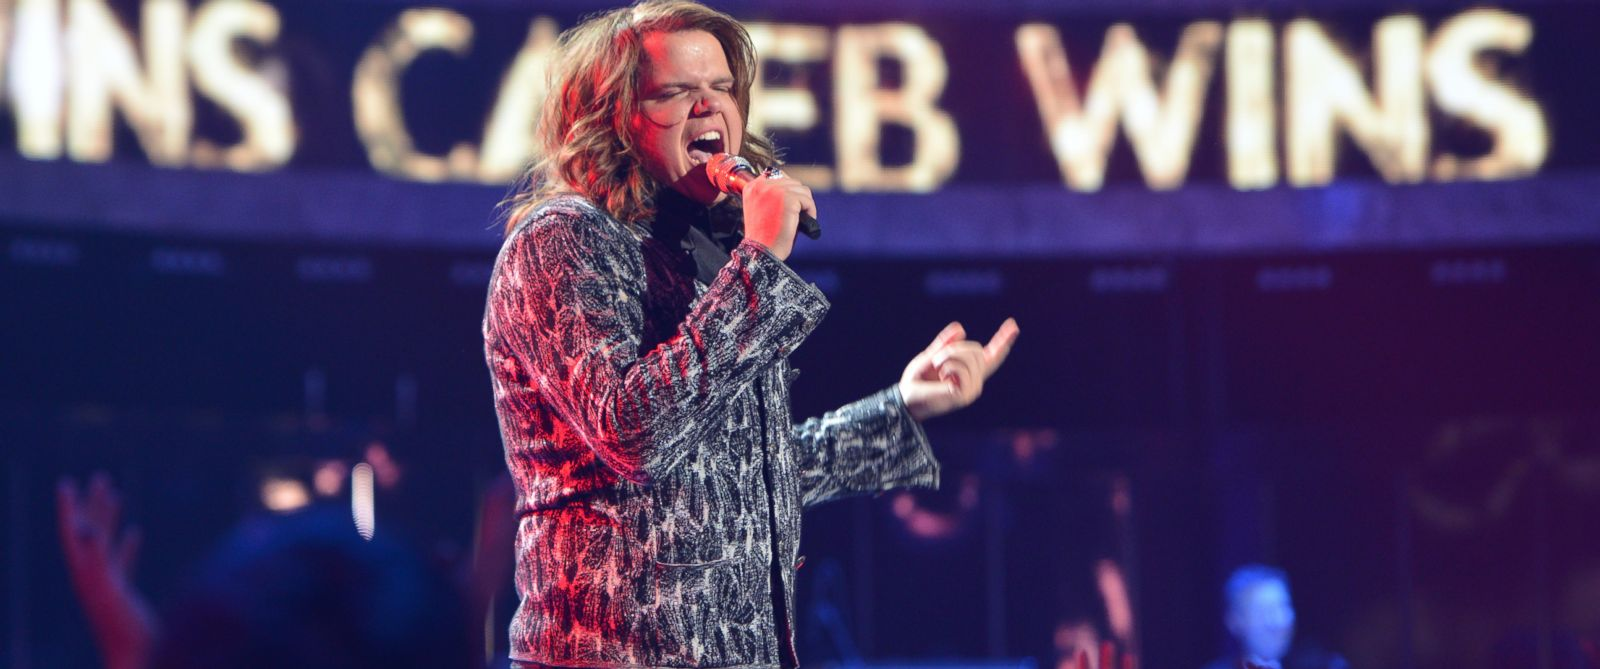 PHOTO: Caleb Johnson sings during the final episode of American Idol, May 21, 2014.